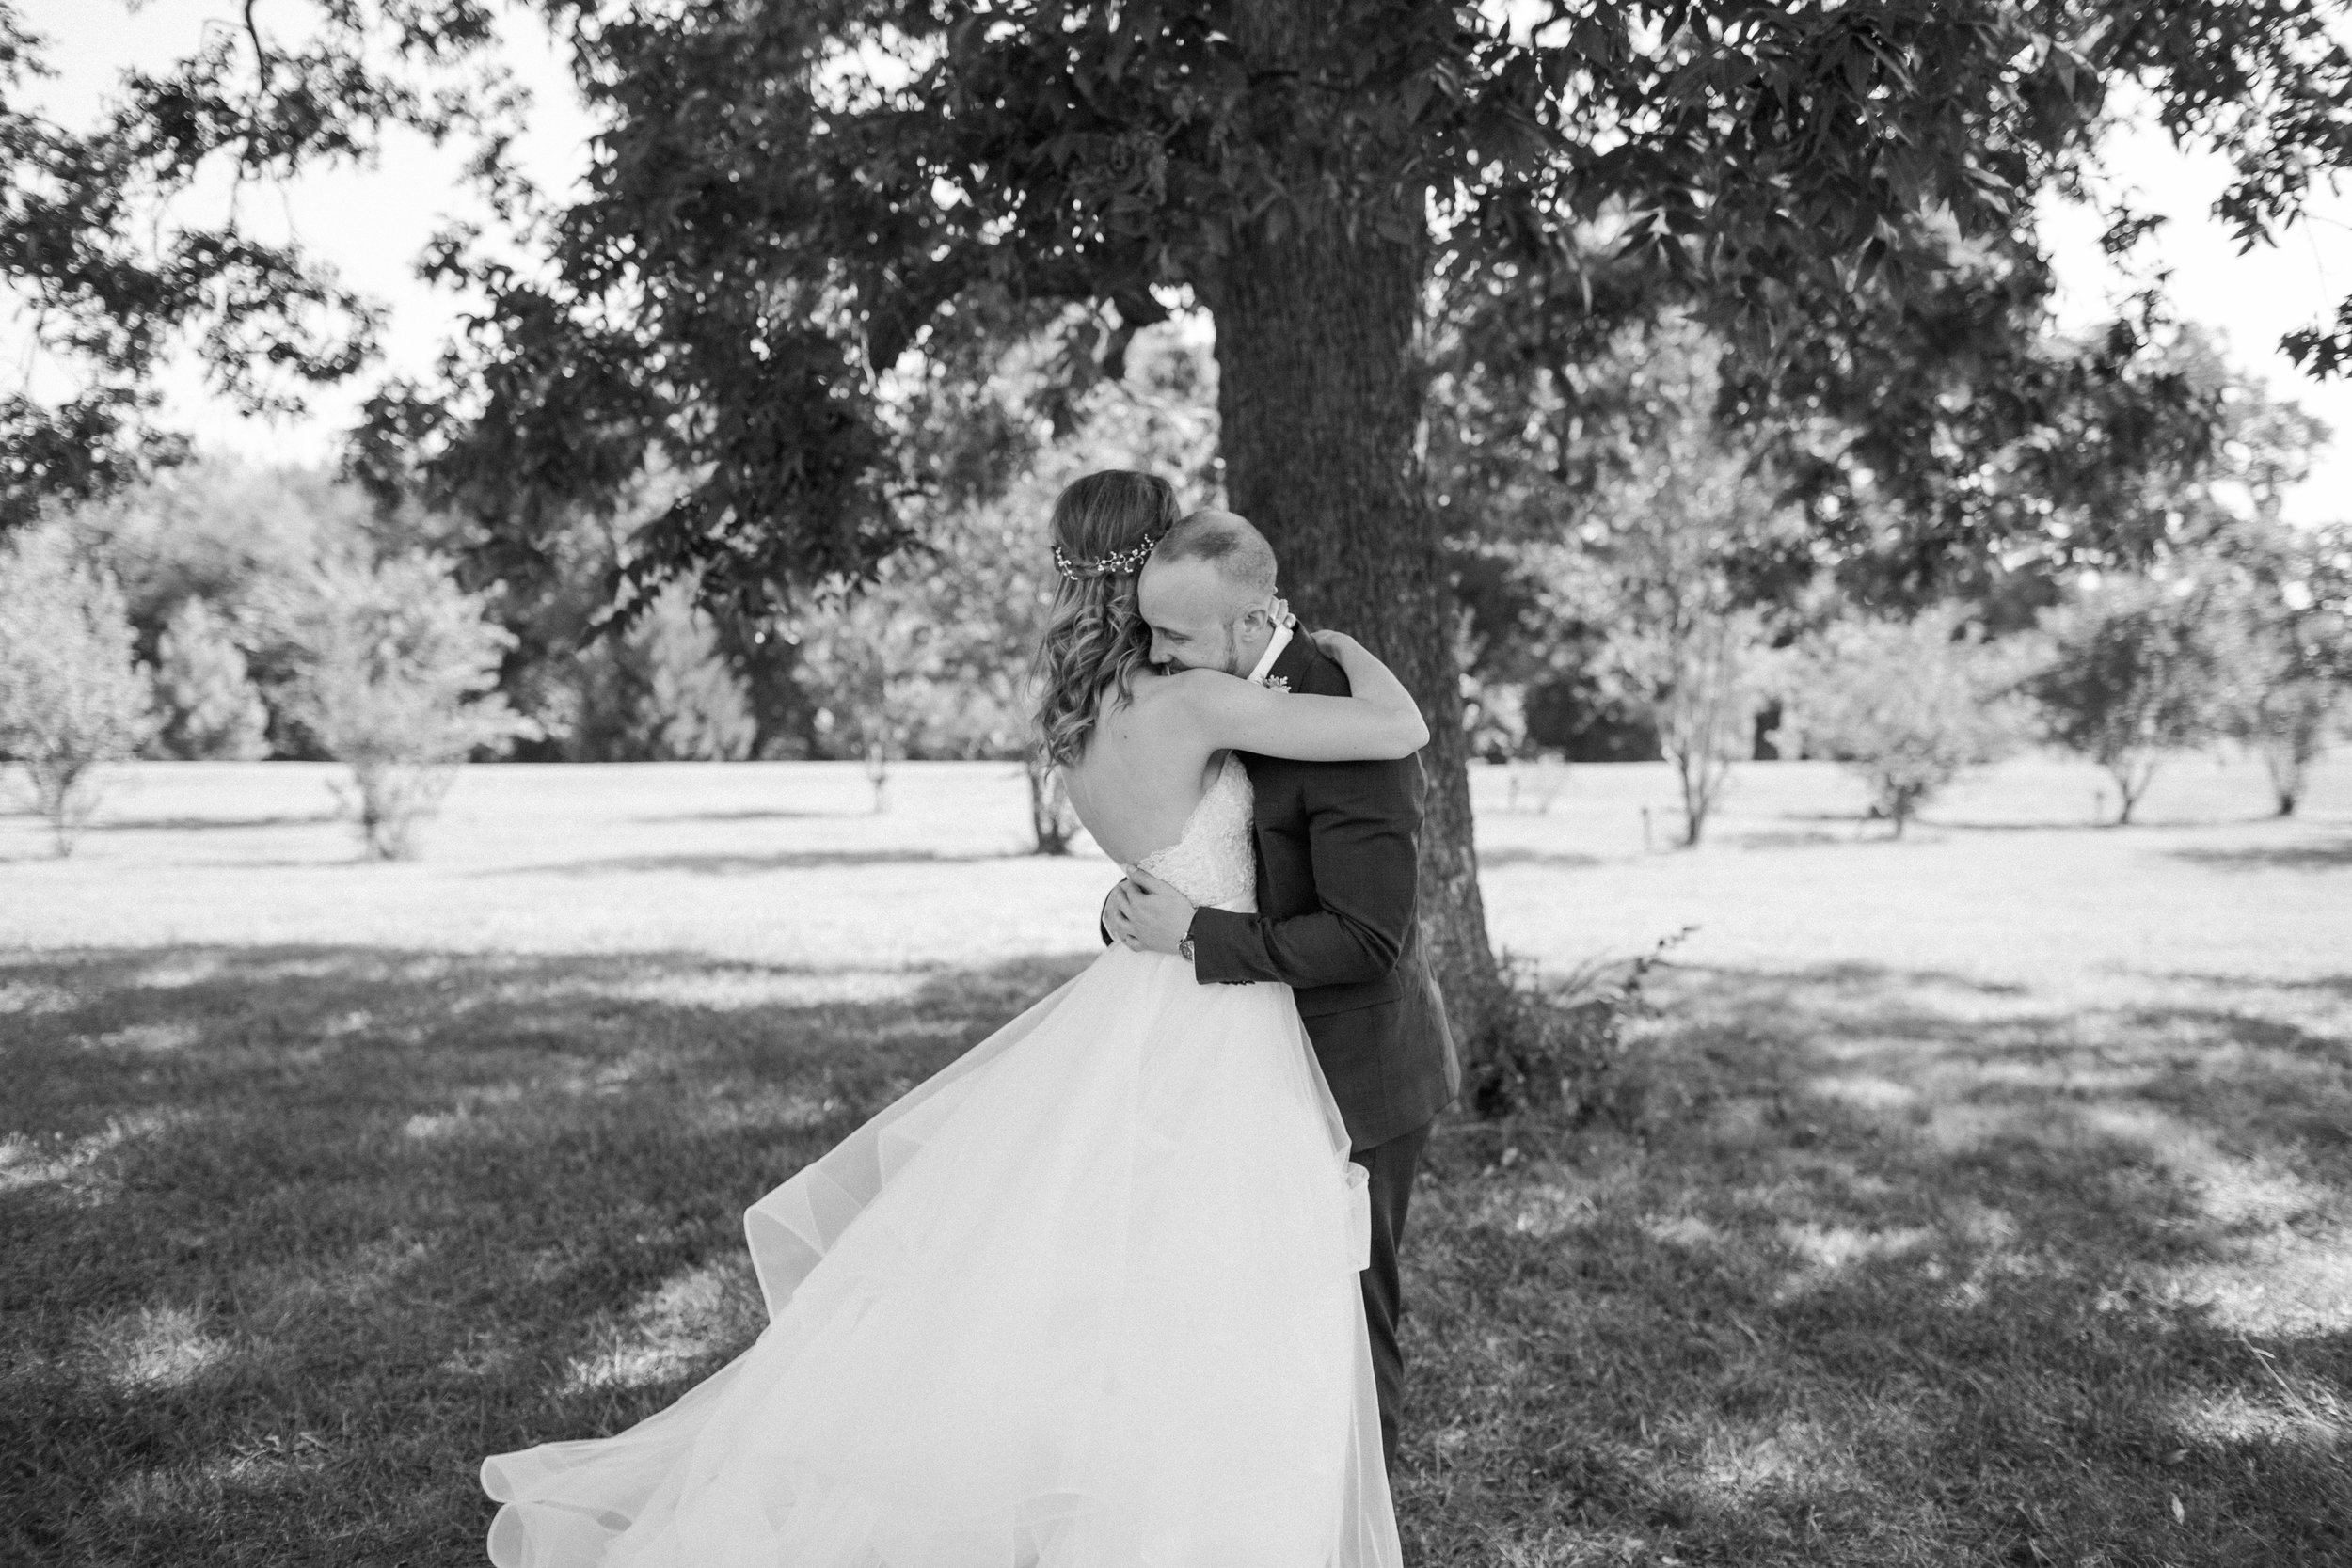 A first look with the bride and groom at Chandler's gardens